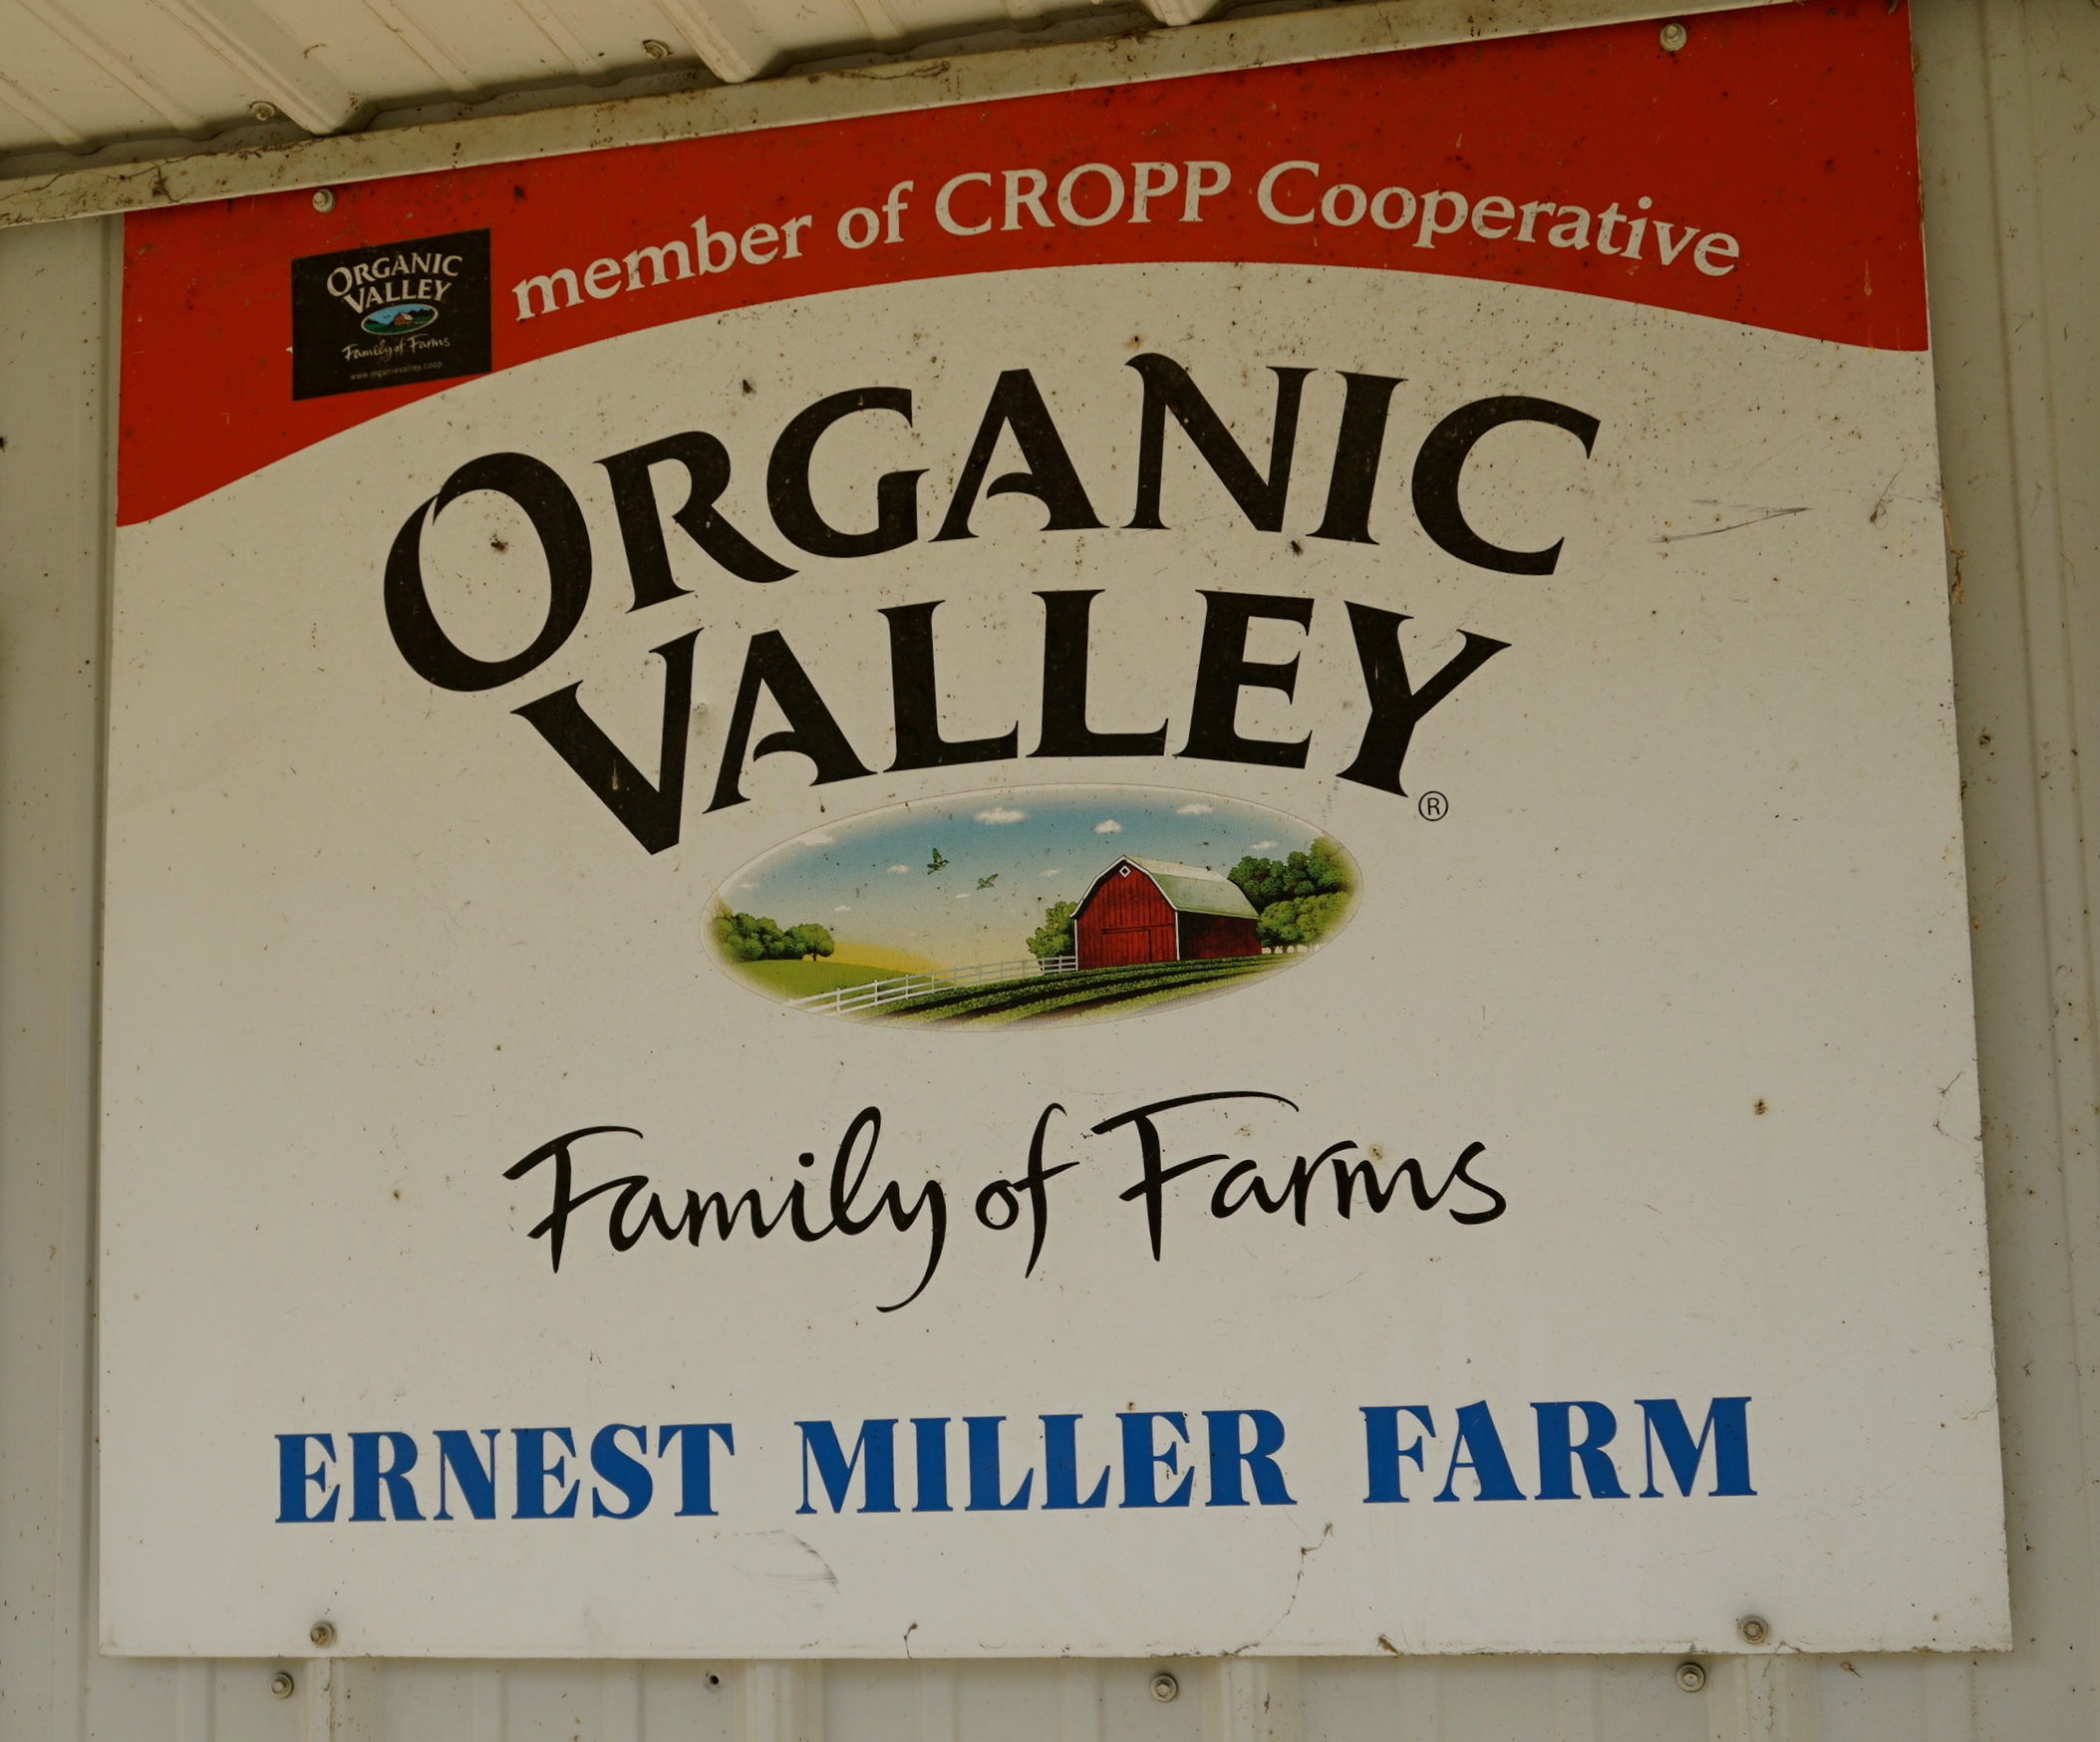 Ernest Miller Farm Organic Valley sign